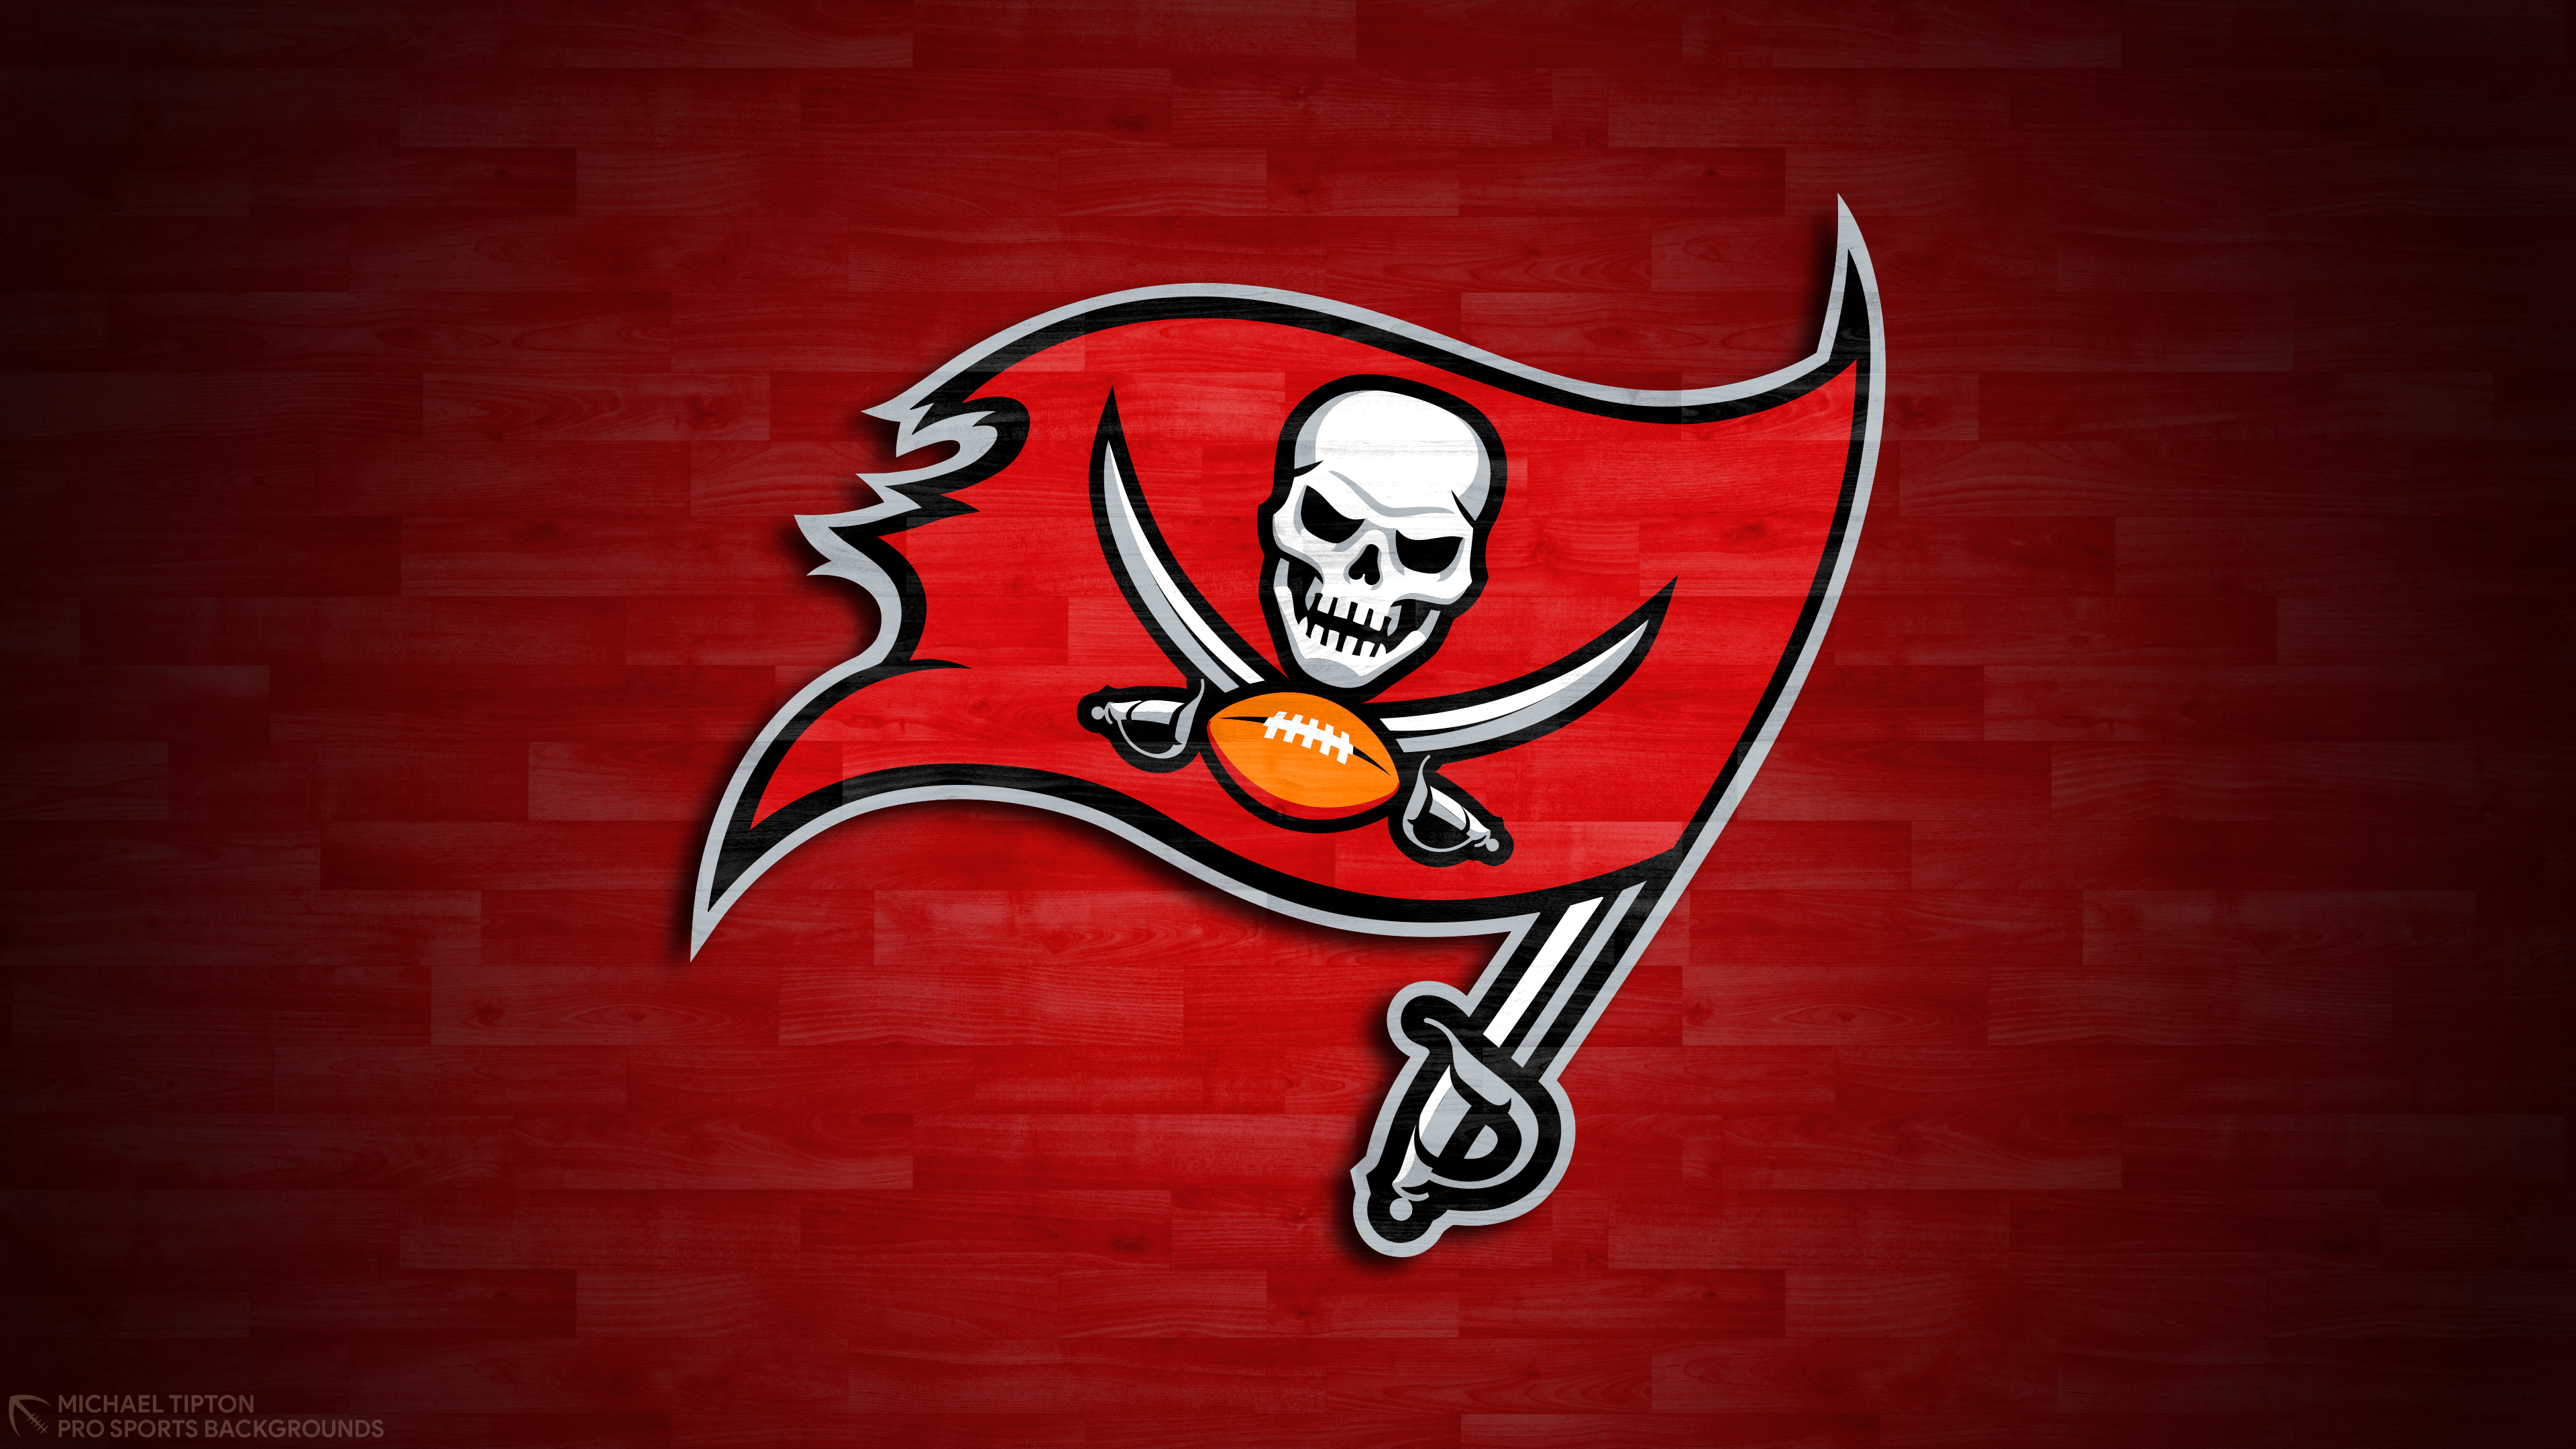 Tampa Bay Buccaneers 2019 Wallpapers